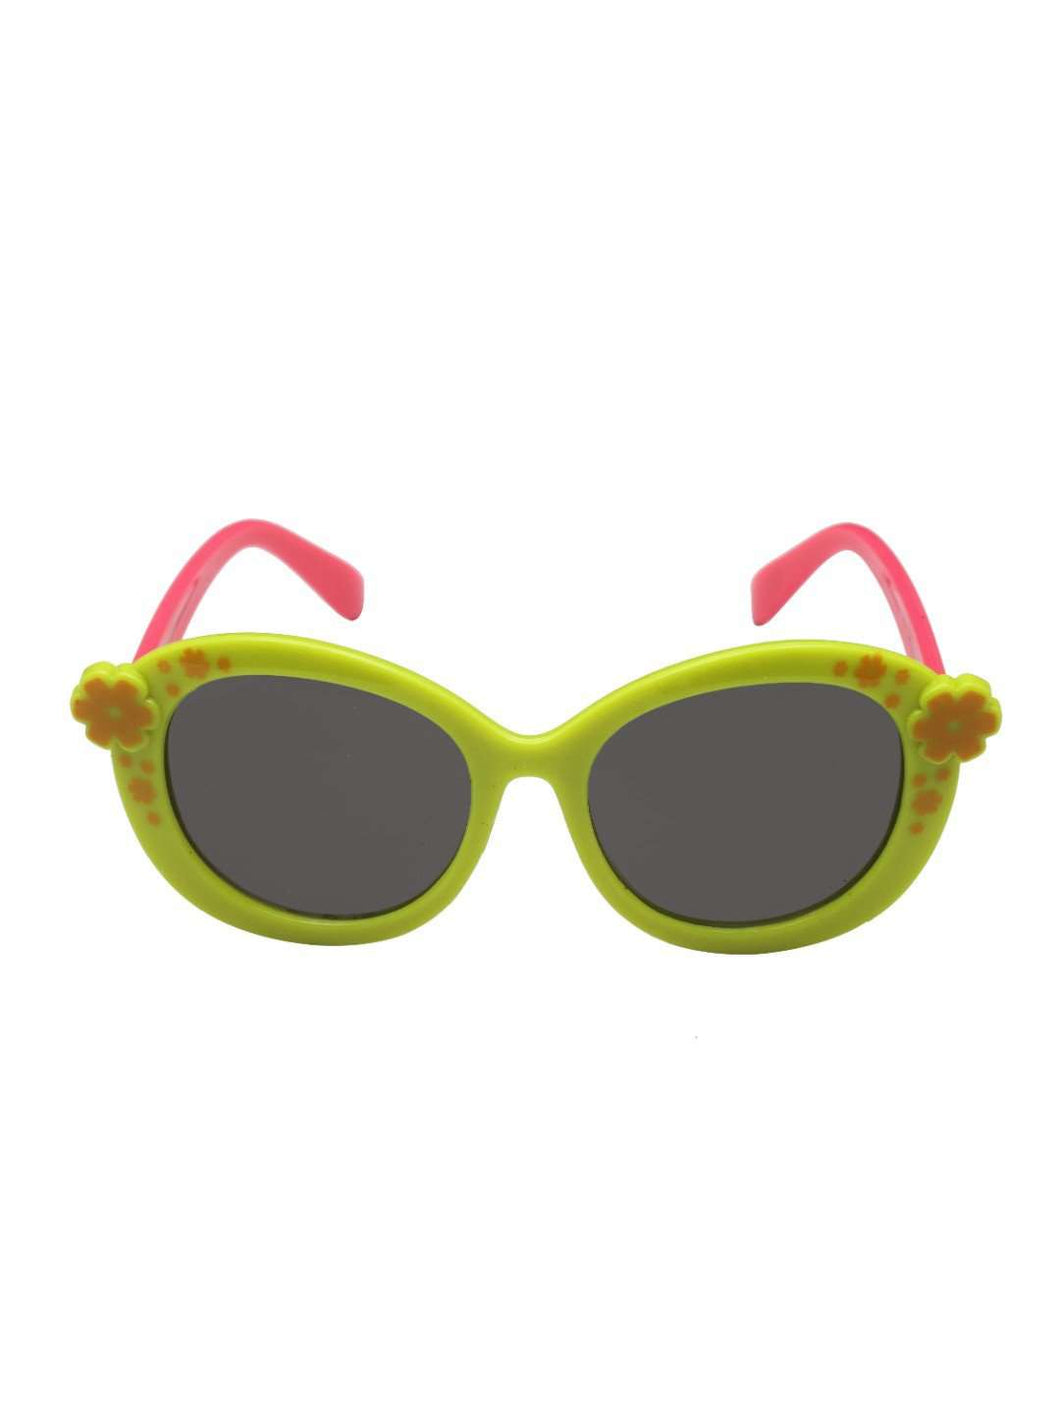 Stol'n Kids Green and Pink Flower Oval Sunglasses - SWHF